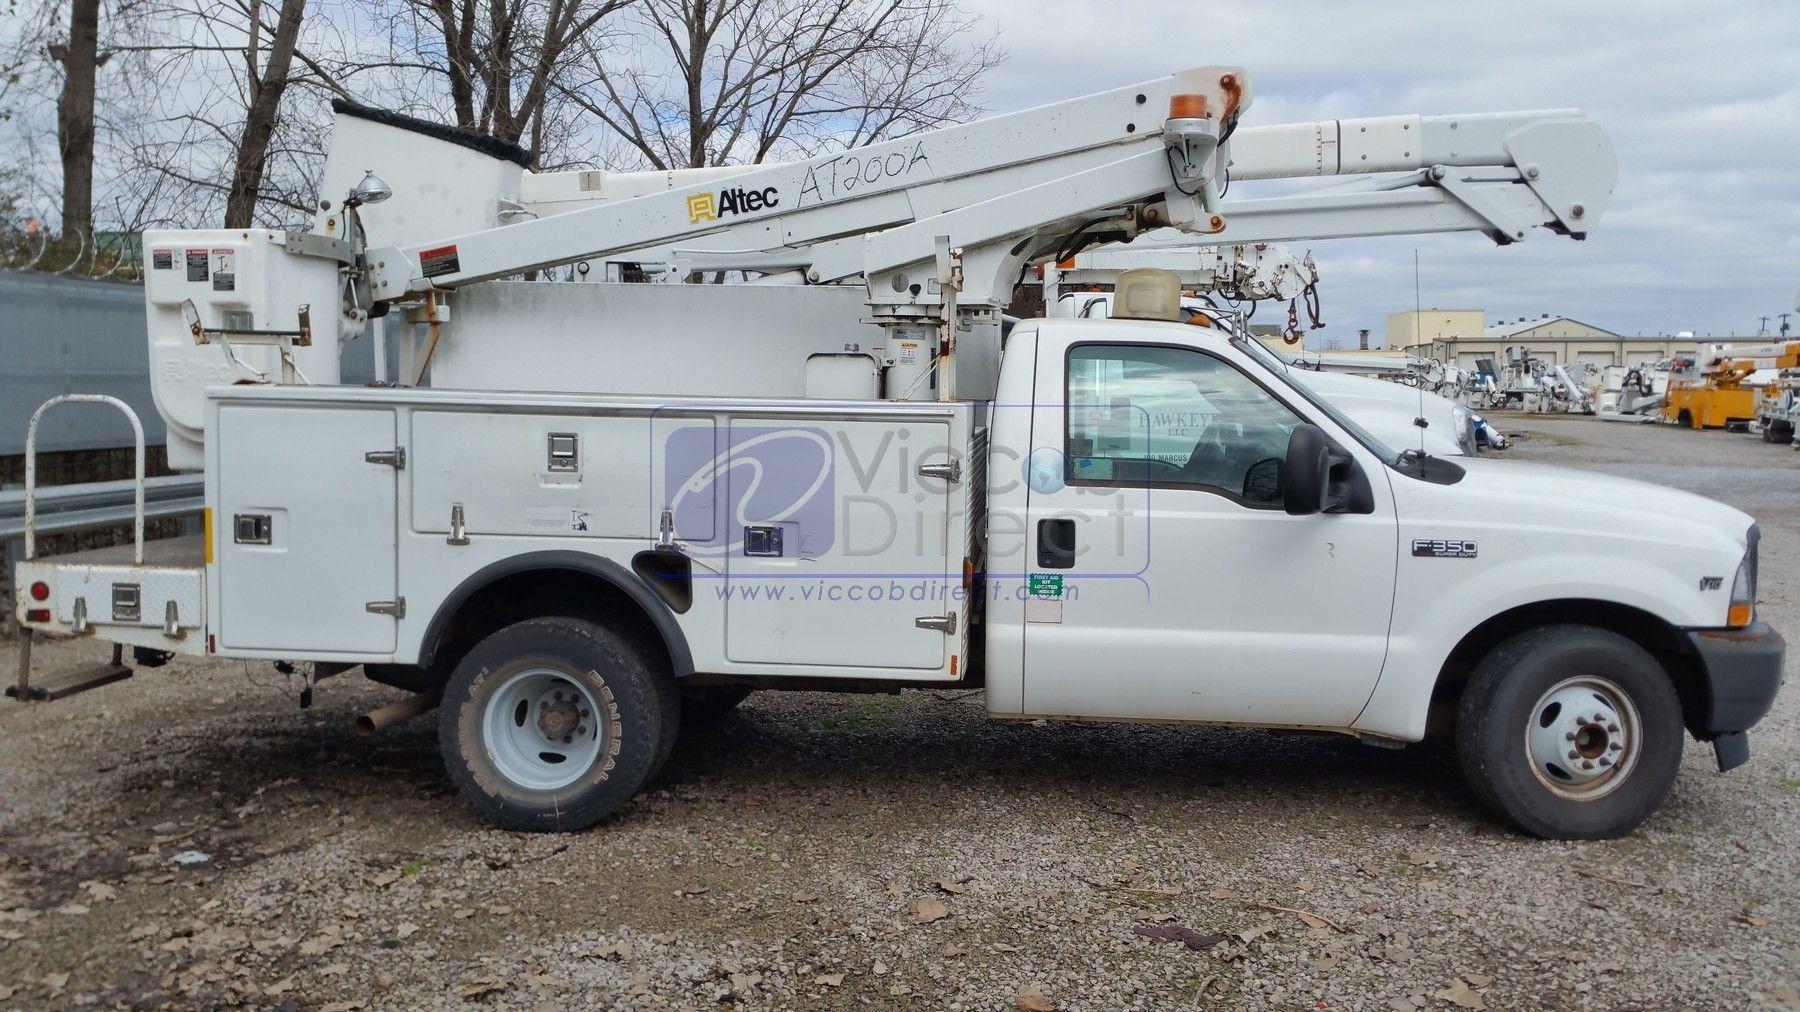 Bucket Truck With Lift Altec At200a Used Sold Bucket Truck Trucks Altec